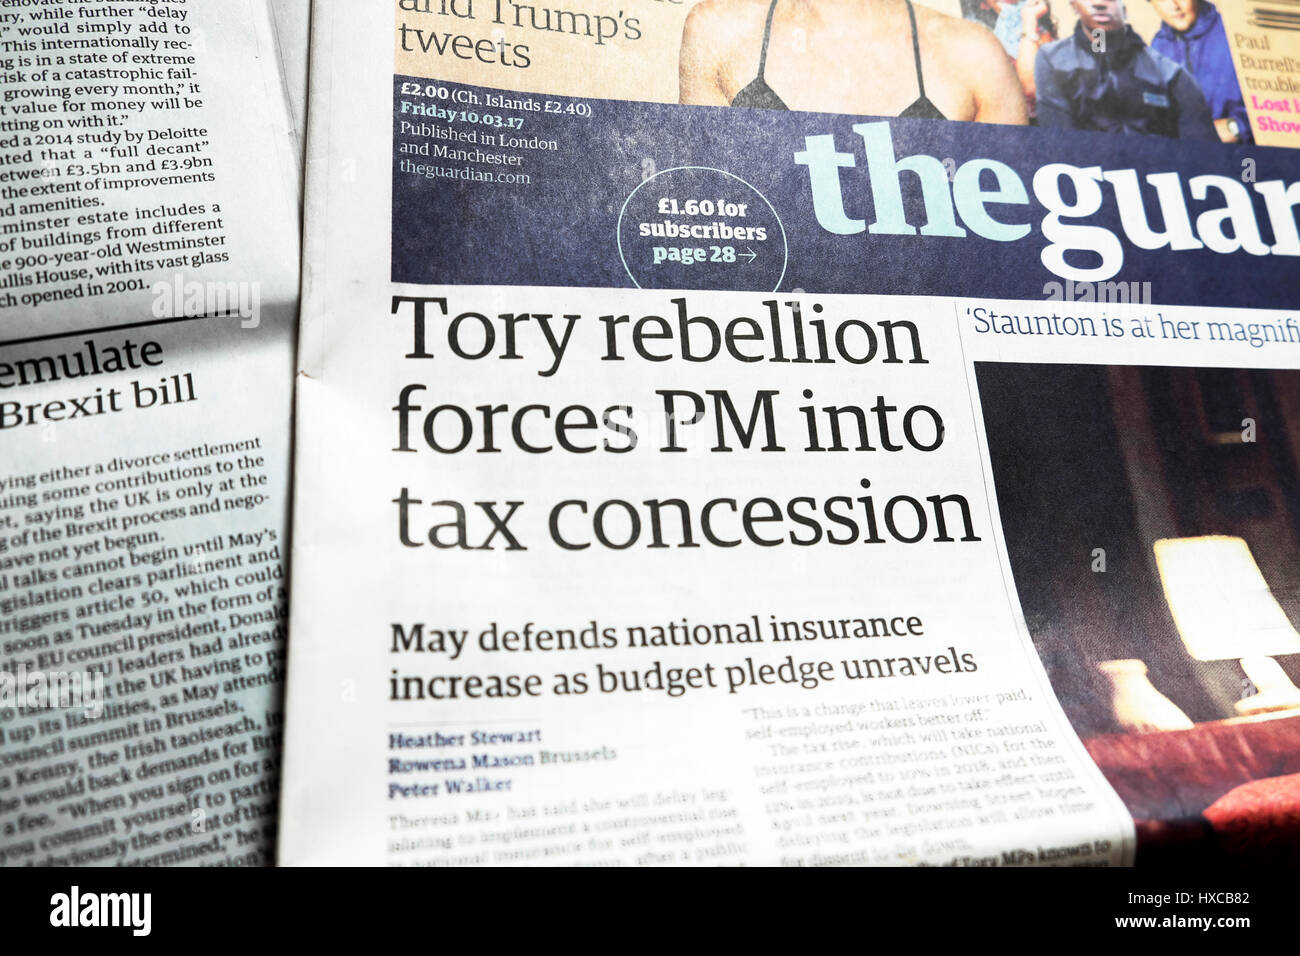 'Tory rebellion forces PM into tax concession'  Guardian newspaper article headline 10 March 2017 London - Stock Image